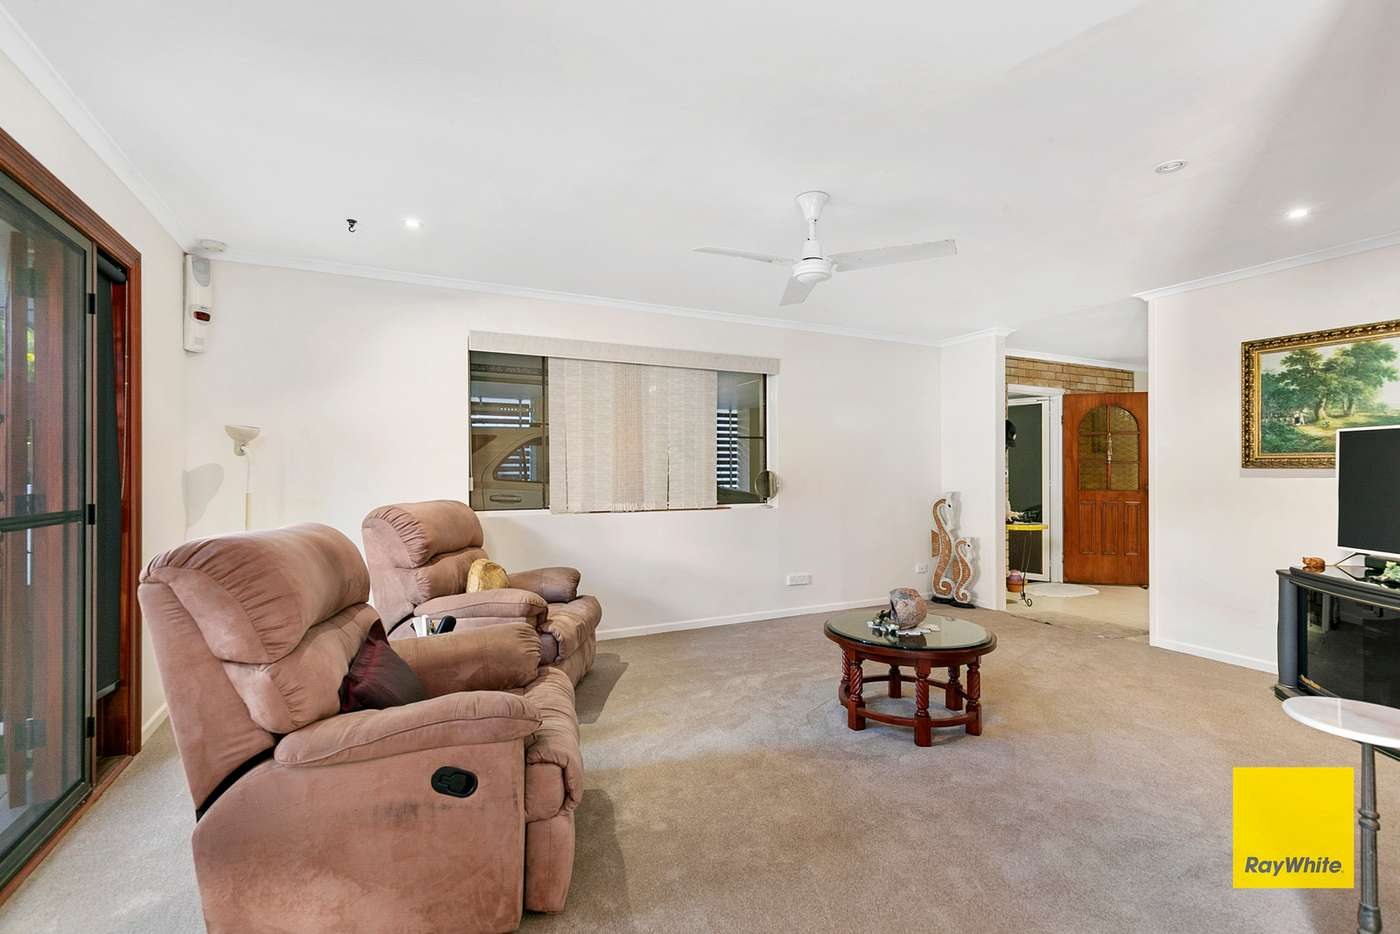 Sixth view of Homely house listing, 14 Marlin Street, Thorneside QLD 4158